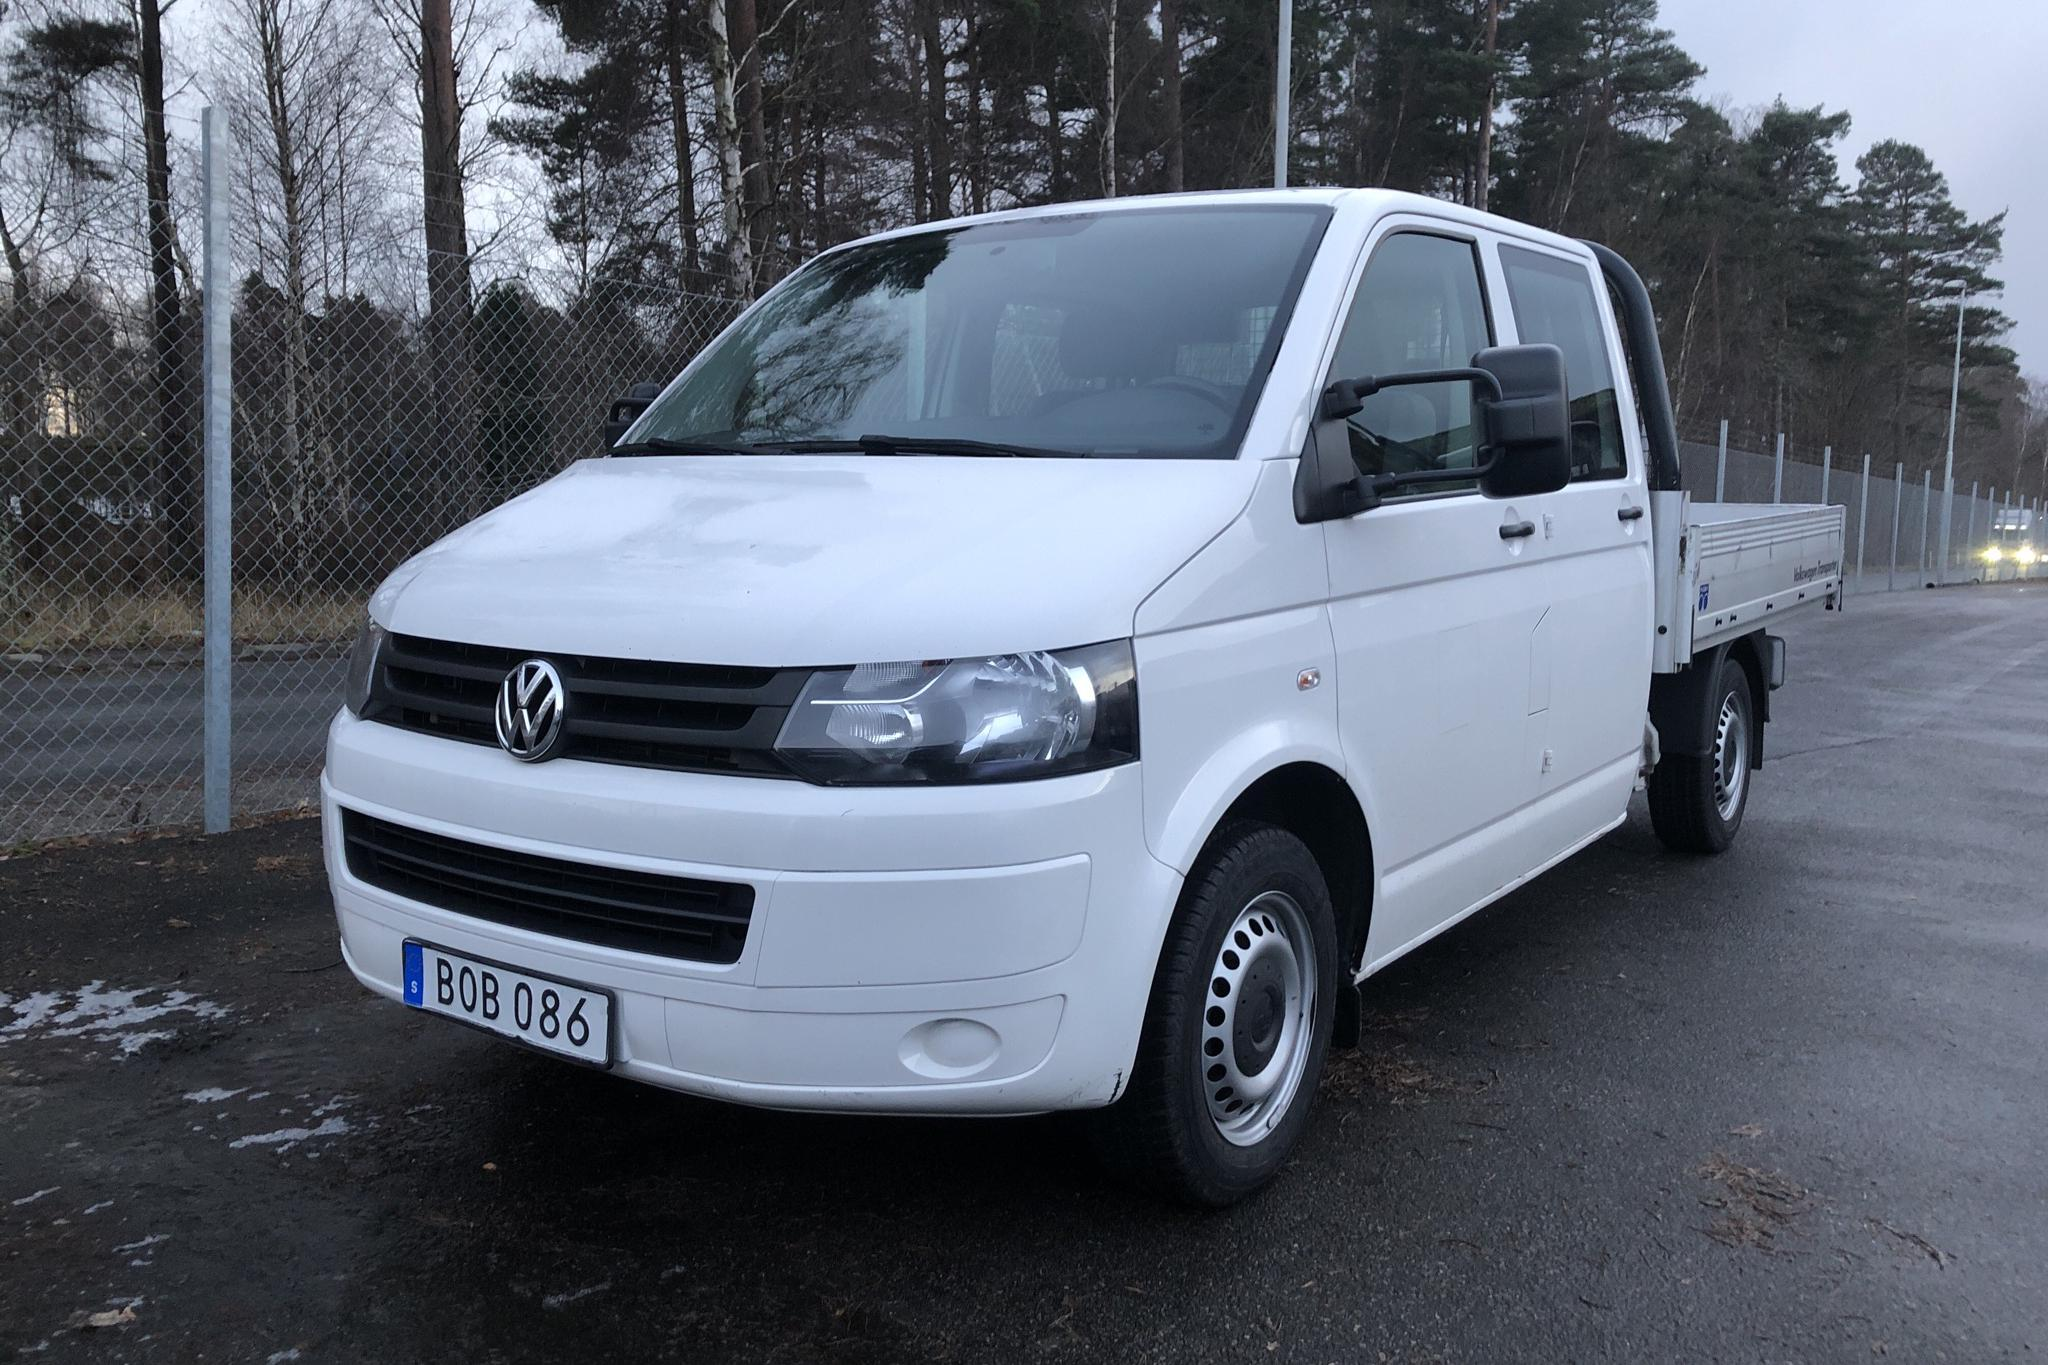 VW Transporter T5 2.0 TDI Pickup 4MOTION (140hk) - 188 100 km - Manual - white - 2014